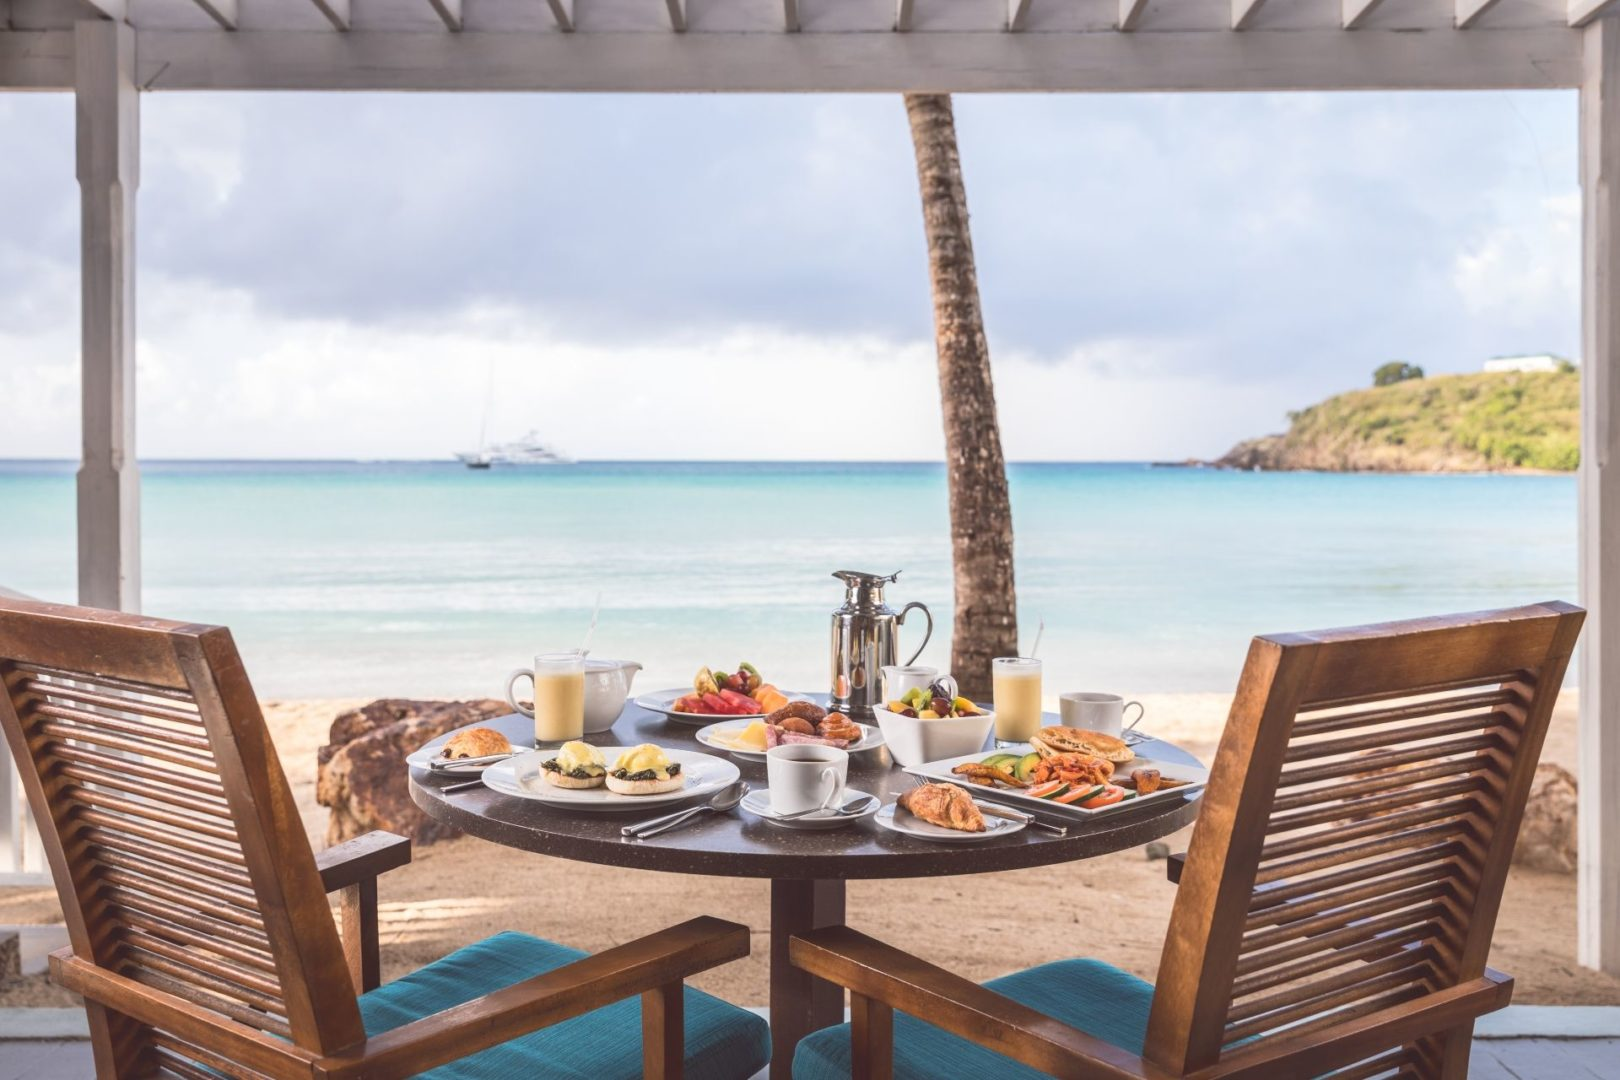 Breakfast with a seaview